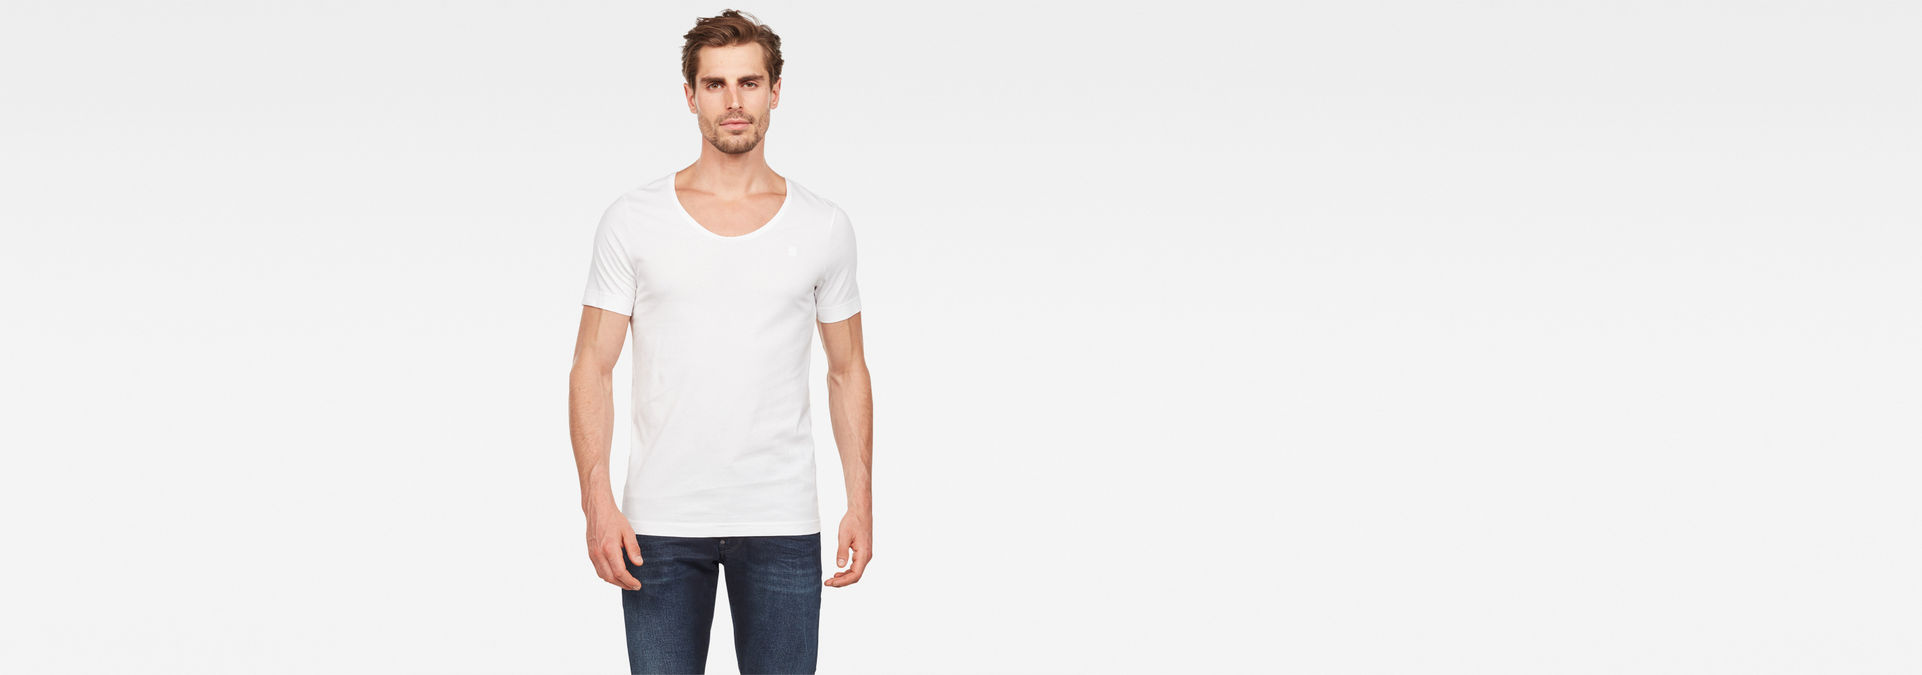 Alkyne Slim T Shirt by G Star